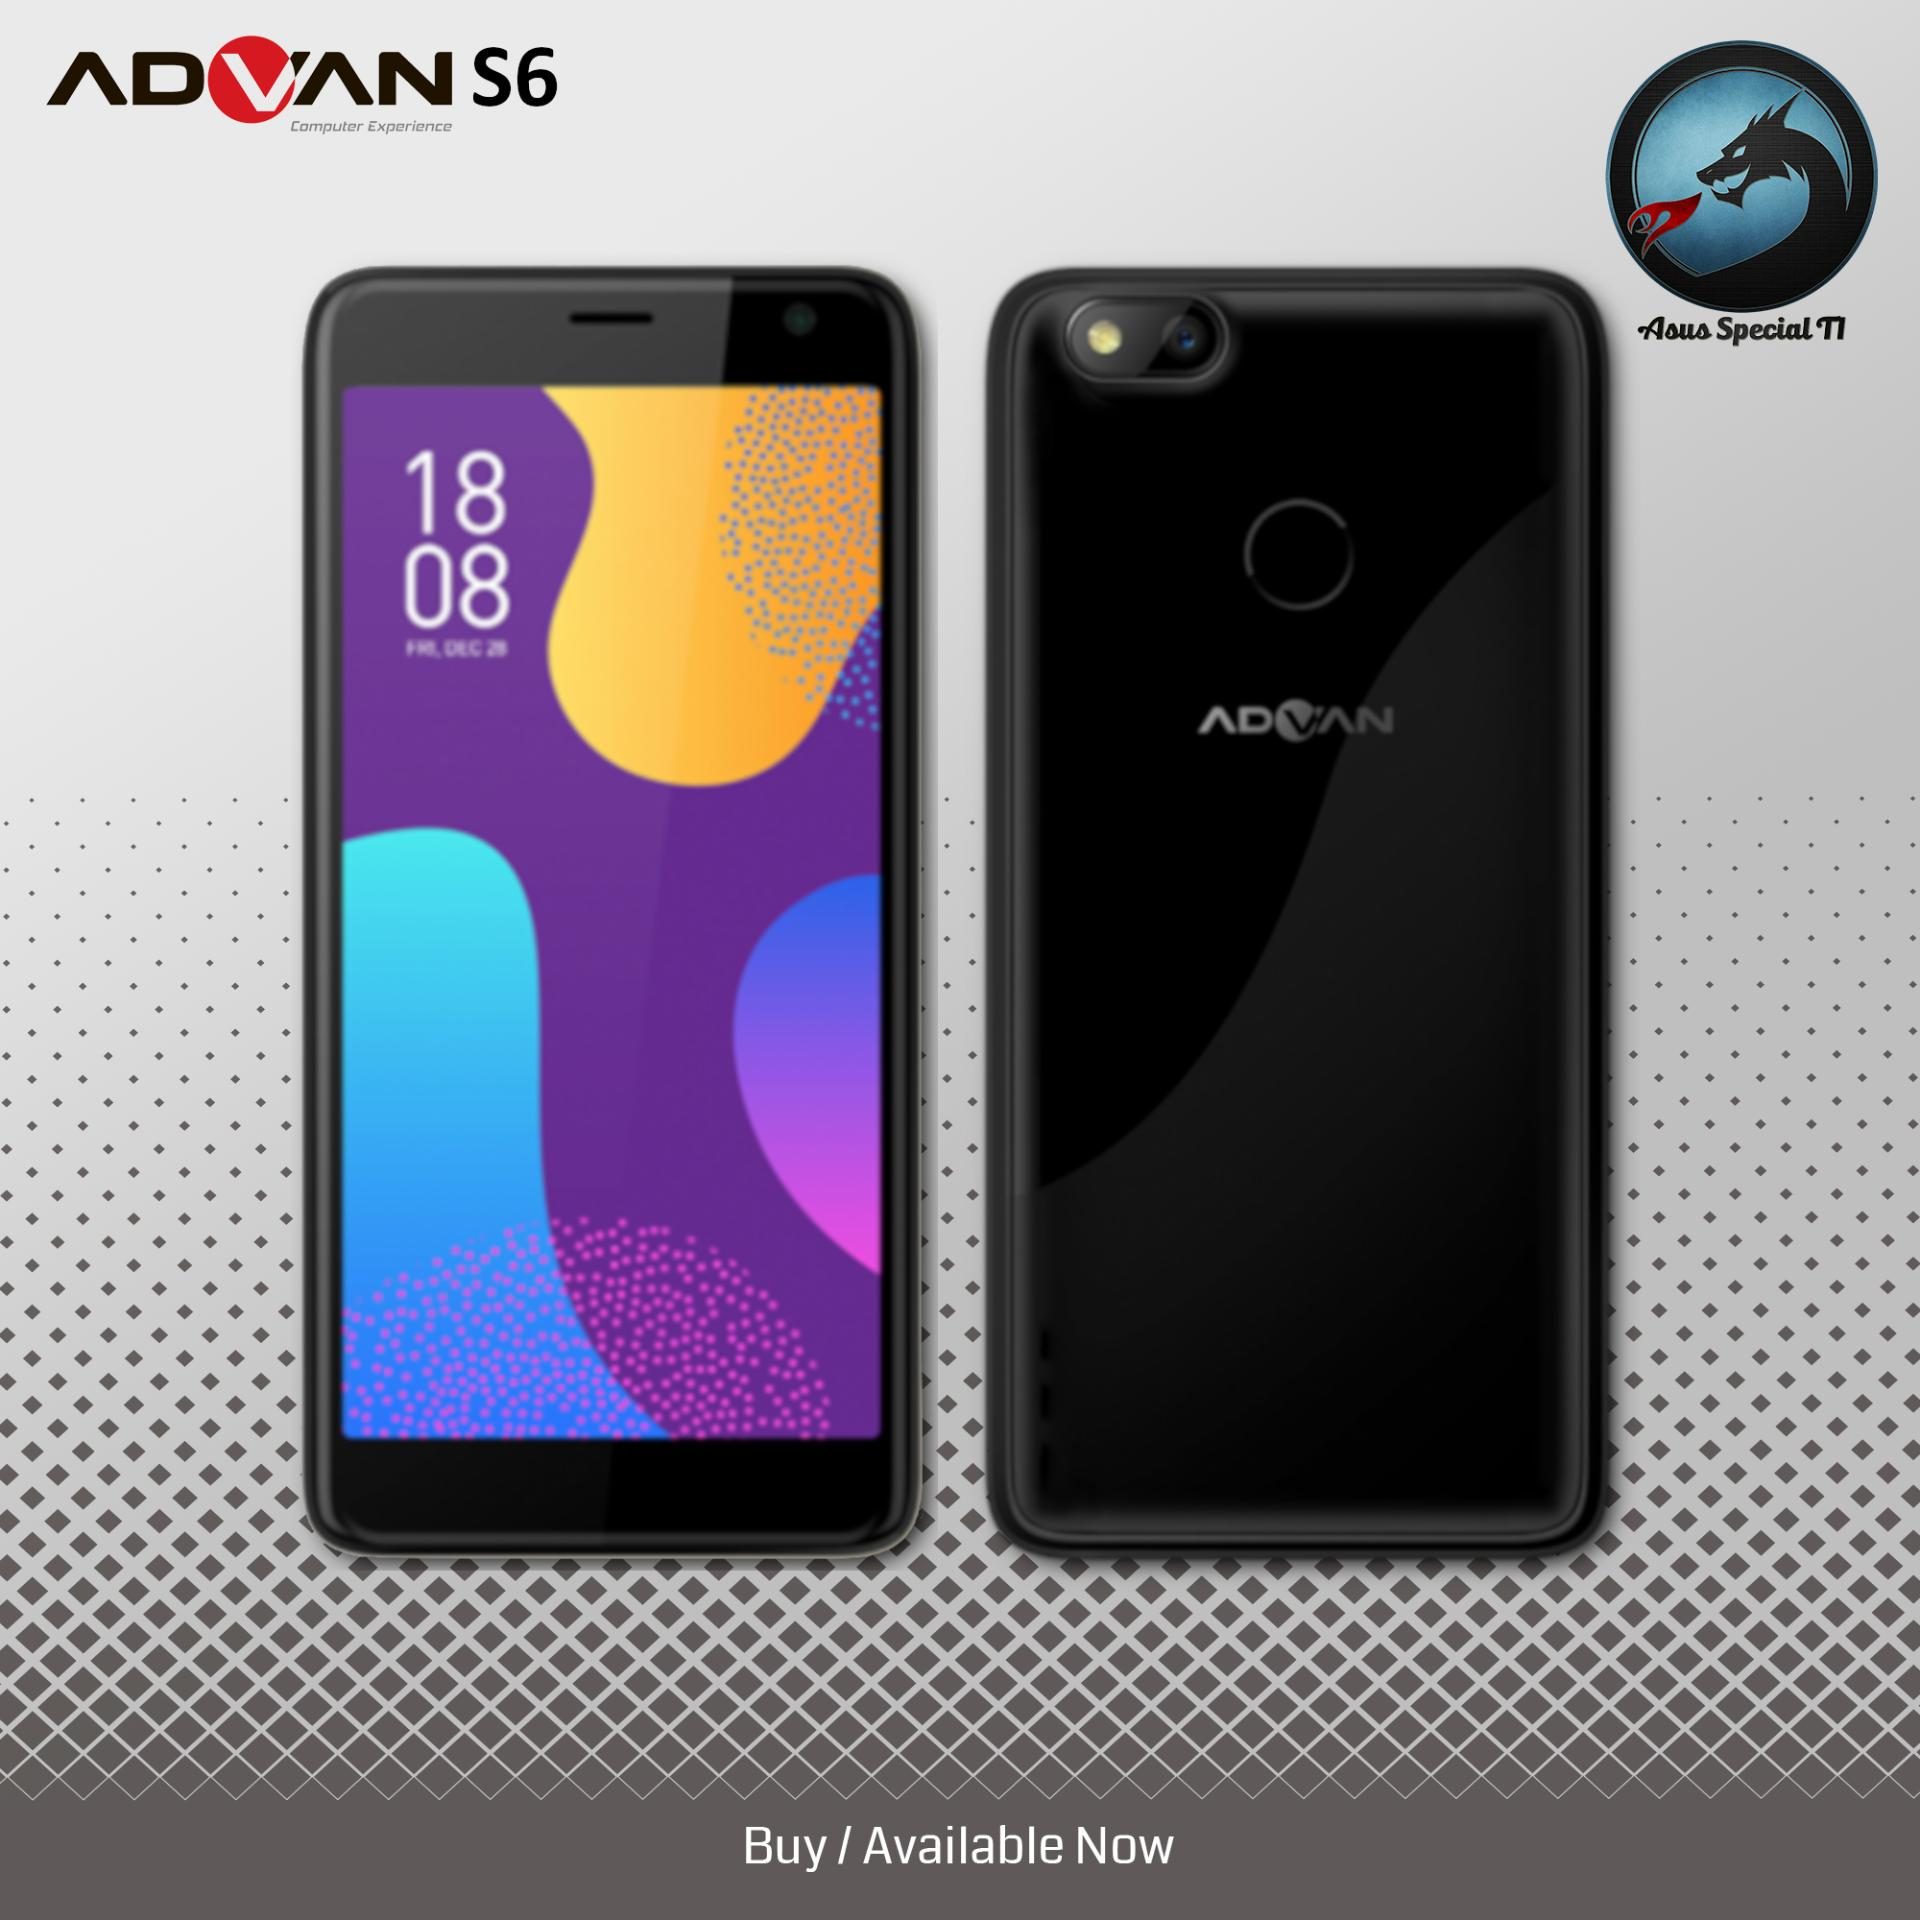 ADVAN S6 4G LTE Fingerprint Android Nougat 7.0 Quadcore 1.3Ghz